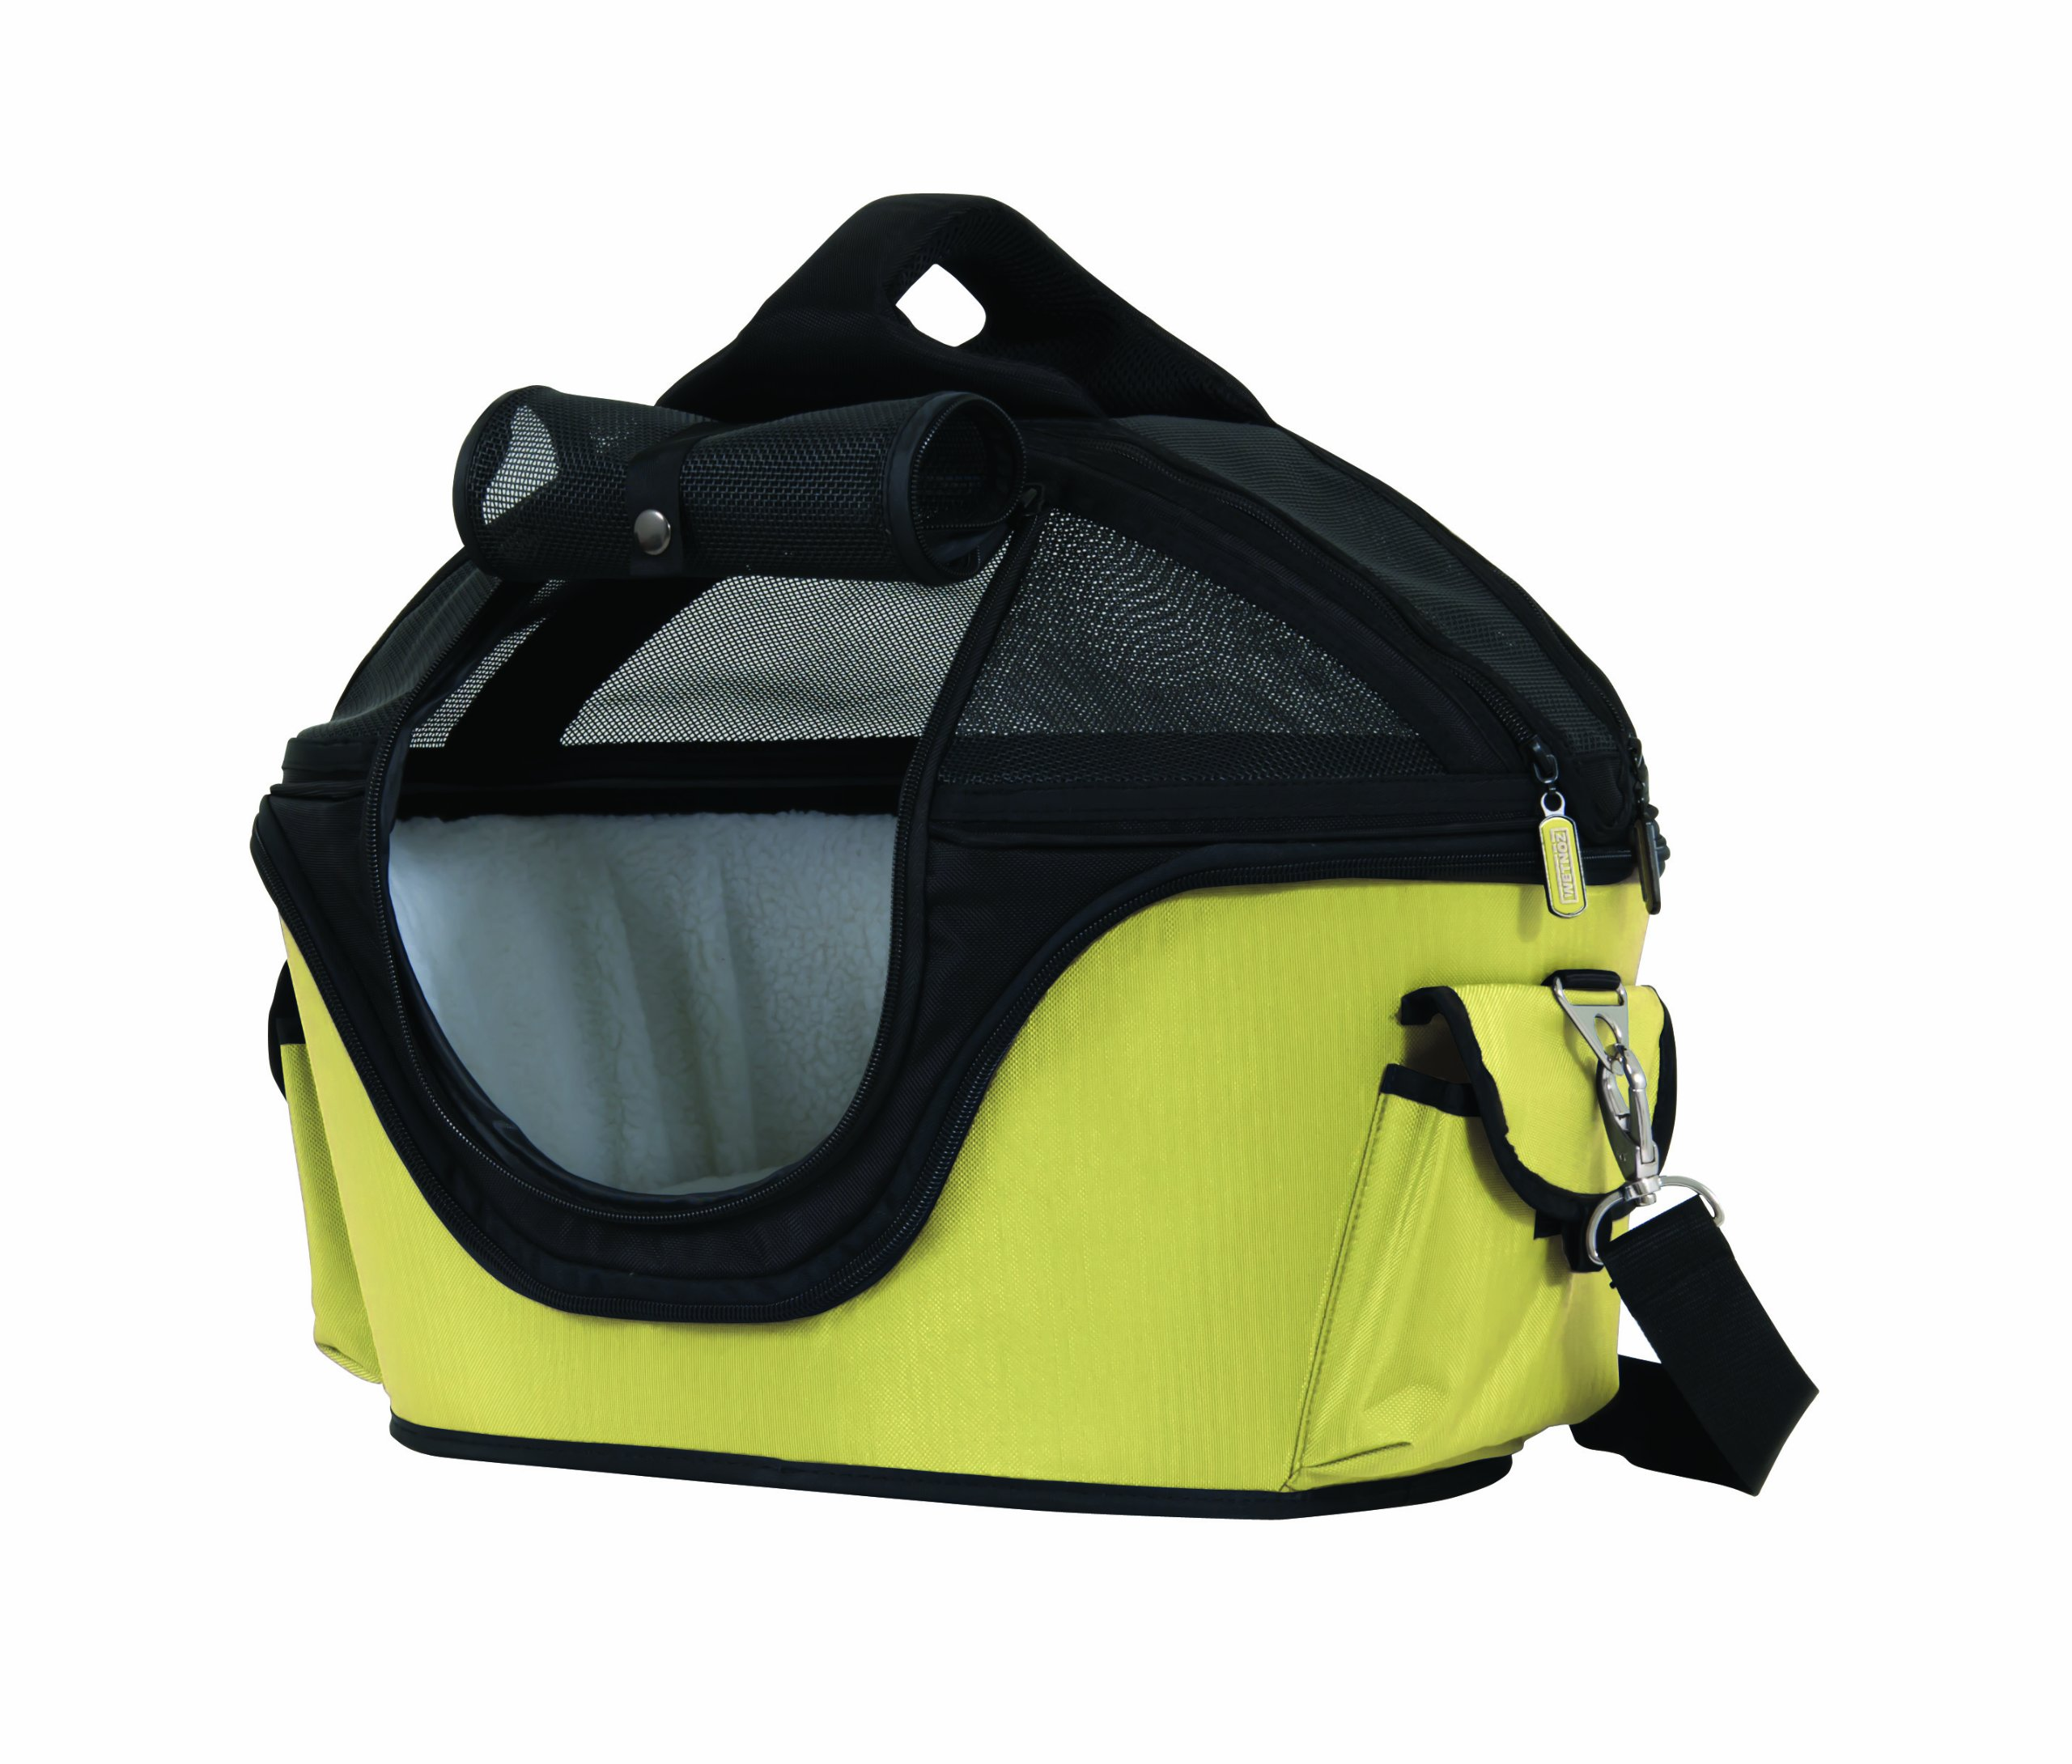 Wetnoz 21963 Pet Pets Carrier, Pear